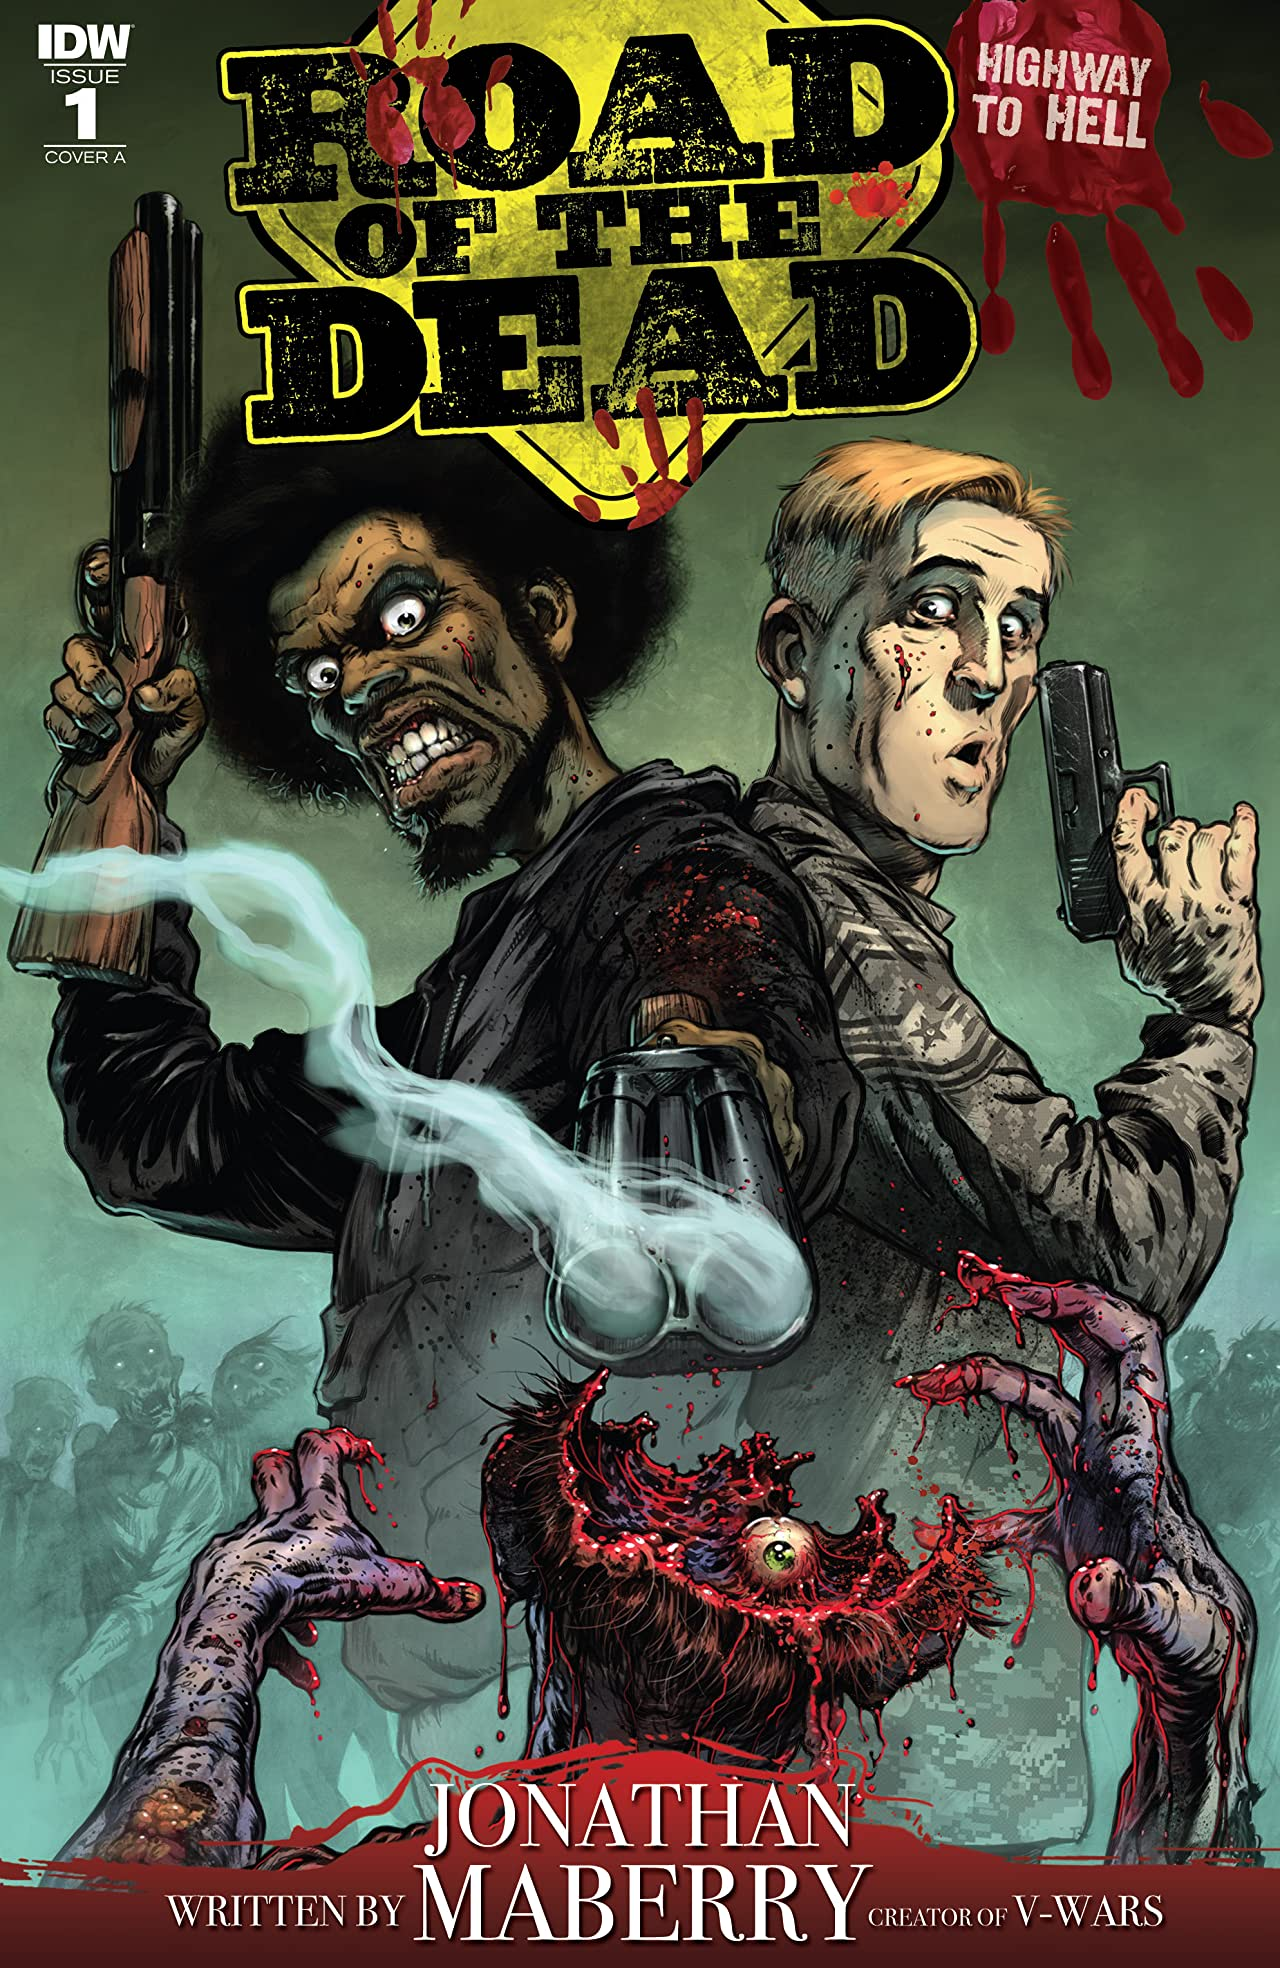 Road of the Dead: Highway to Hell #1